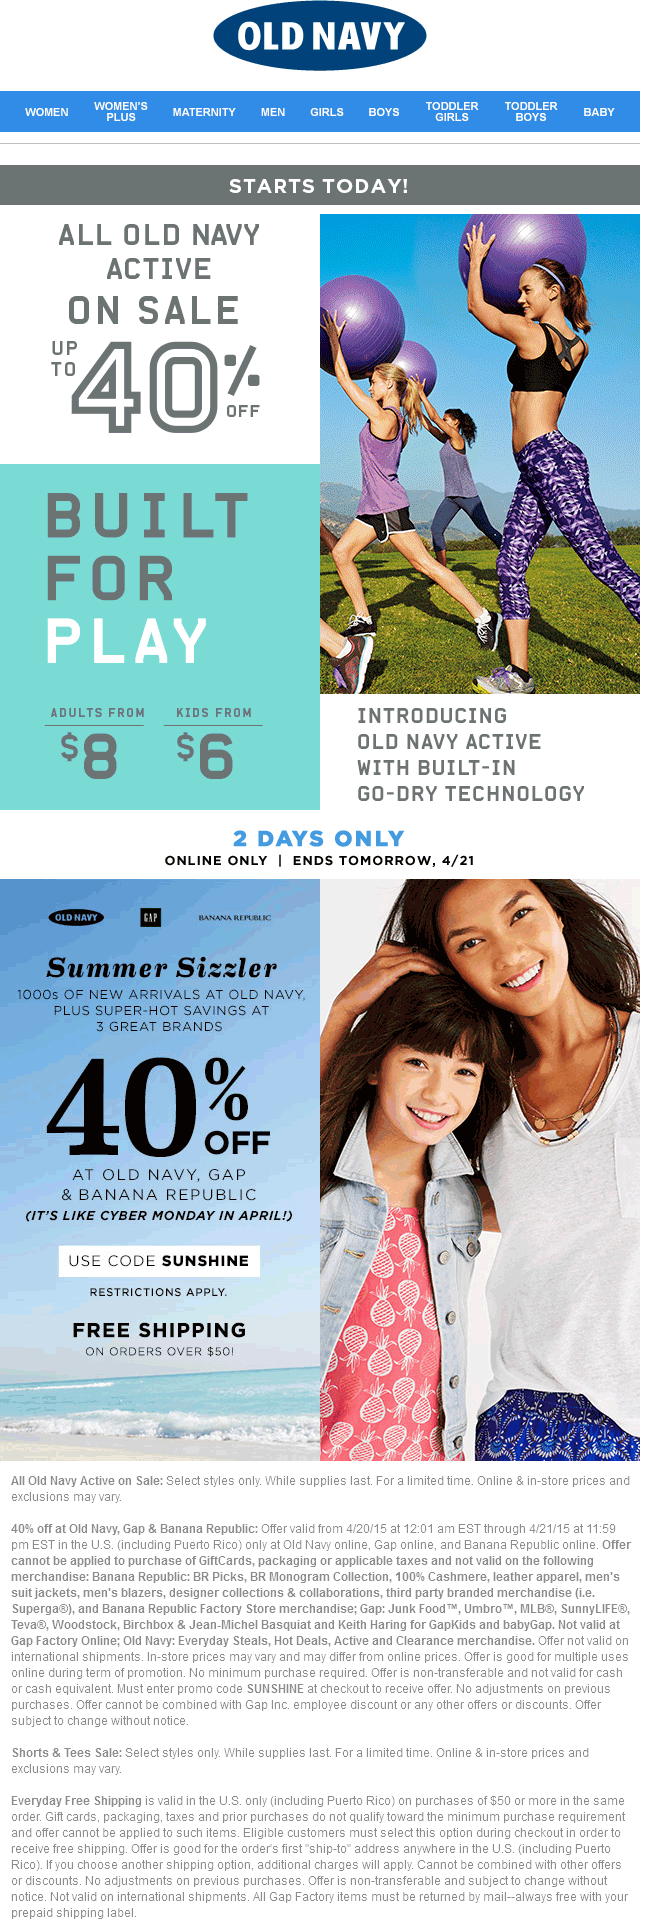 Old Navy Coupon May 2018 40% off online at Old Navy, Gap & Banana Republic via promo code SUNSHINE